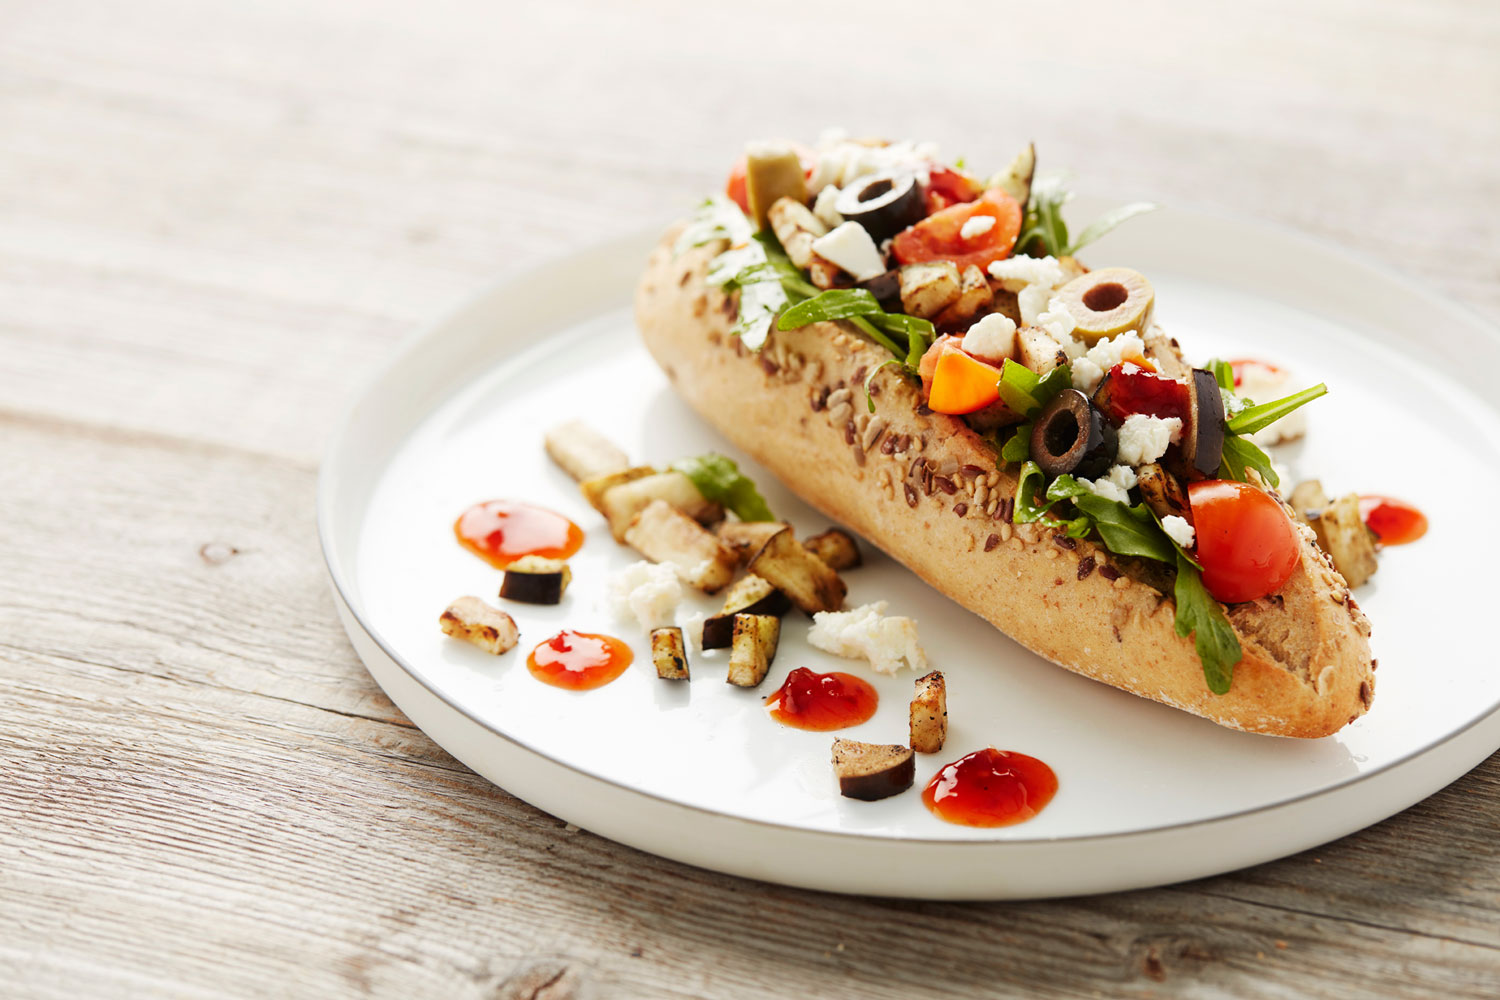 Bread roll with feta salad, chili sauce